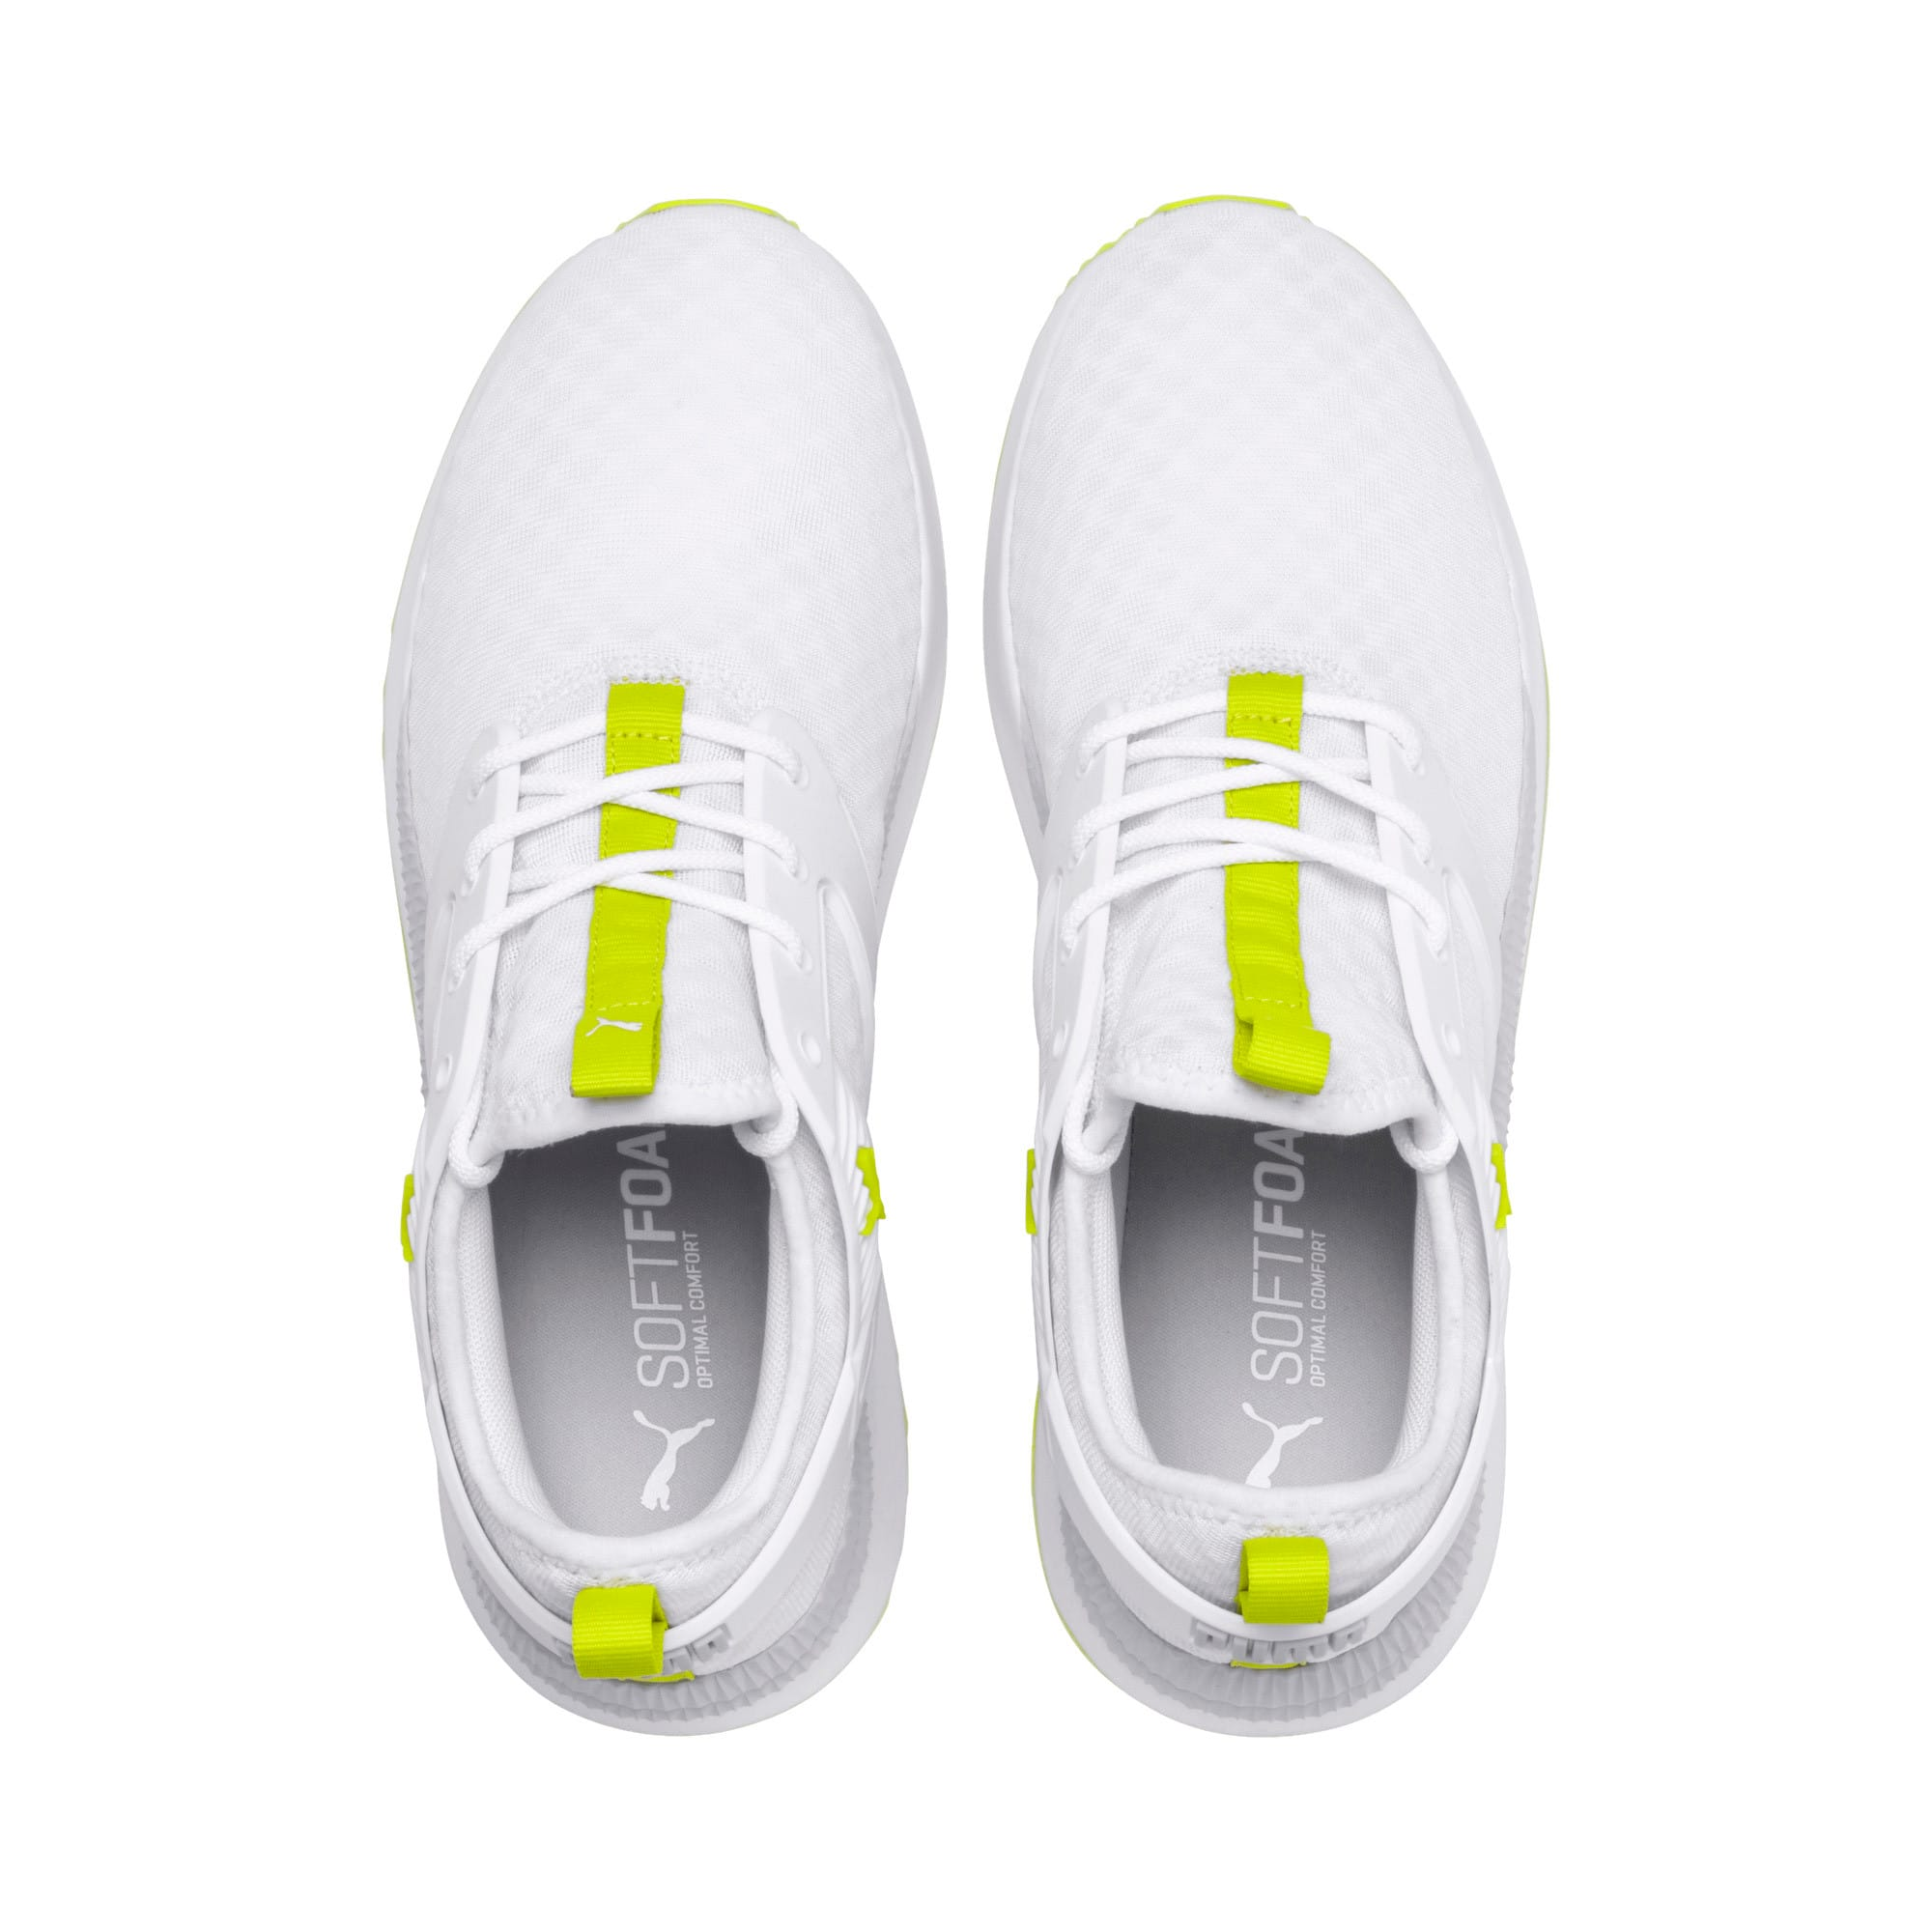 Thumbnail 7 of Pacer Next Excel Laufschuhe, Puma White-Nrgy Yellow, medium